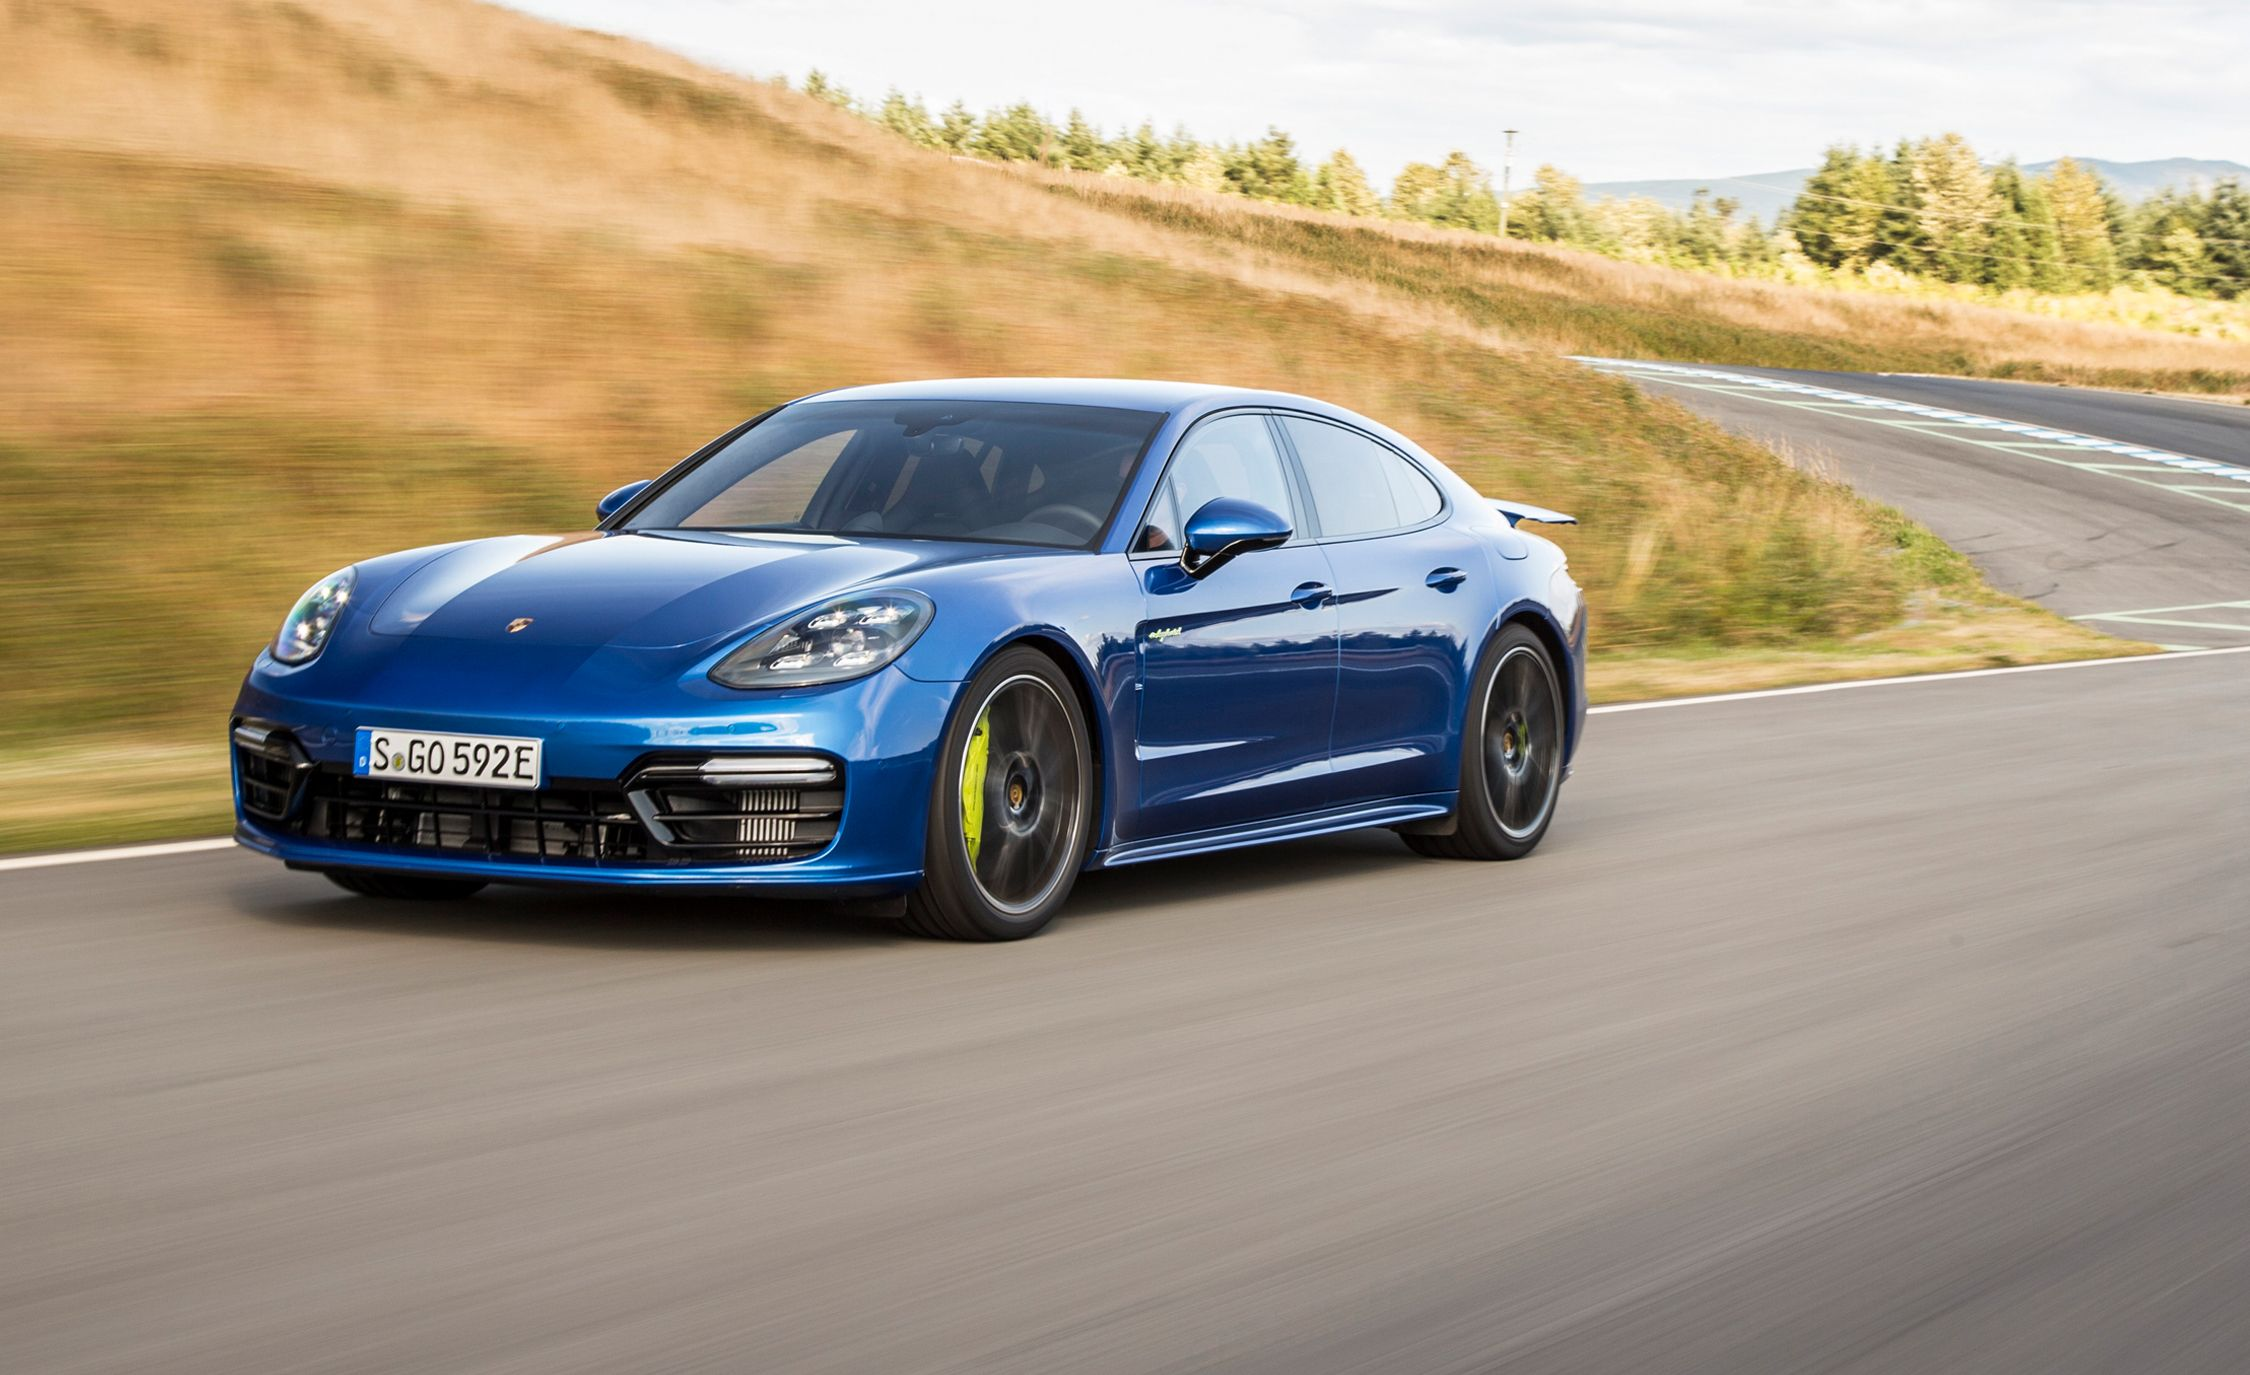 2018 Porsche Panamera Turbo S EHybrid First Drive  Review  Car